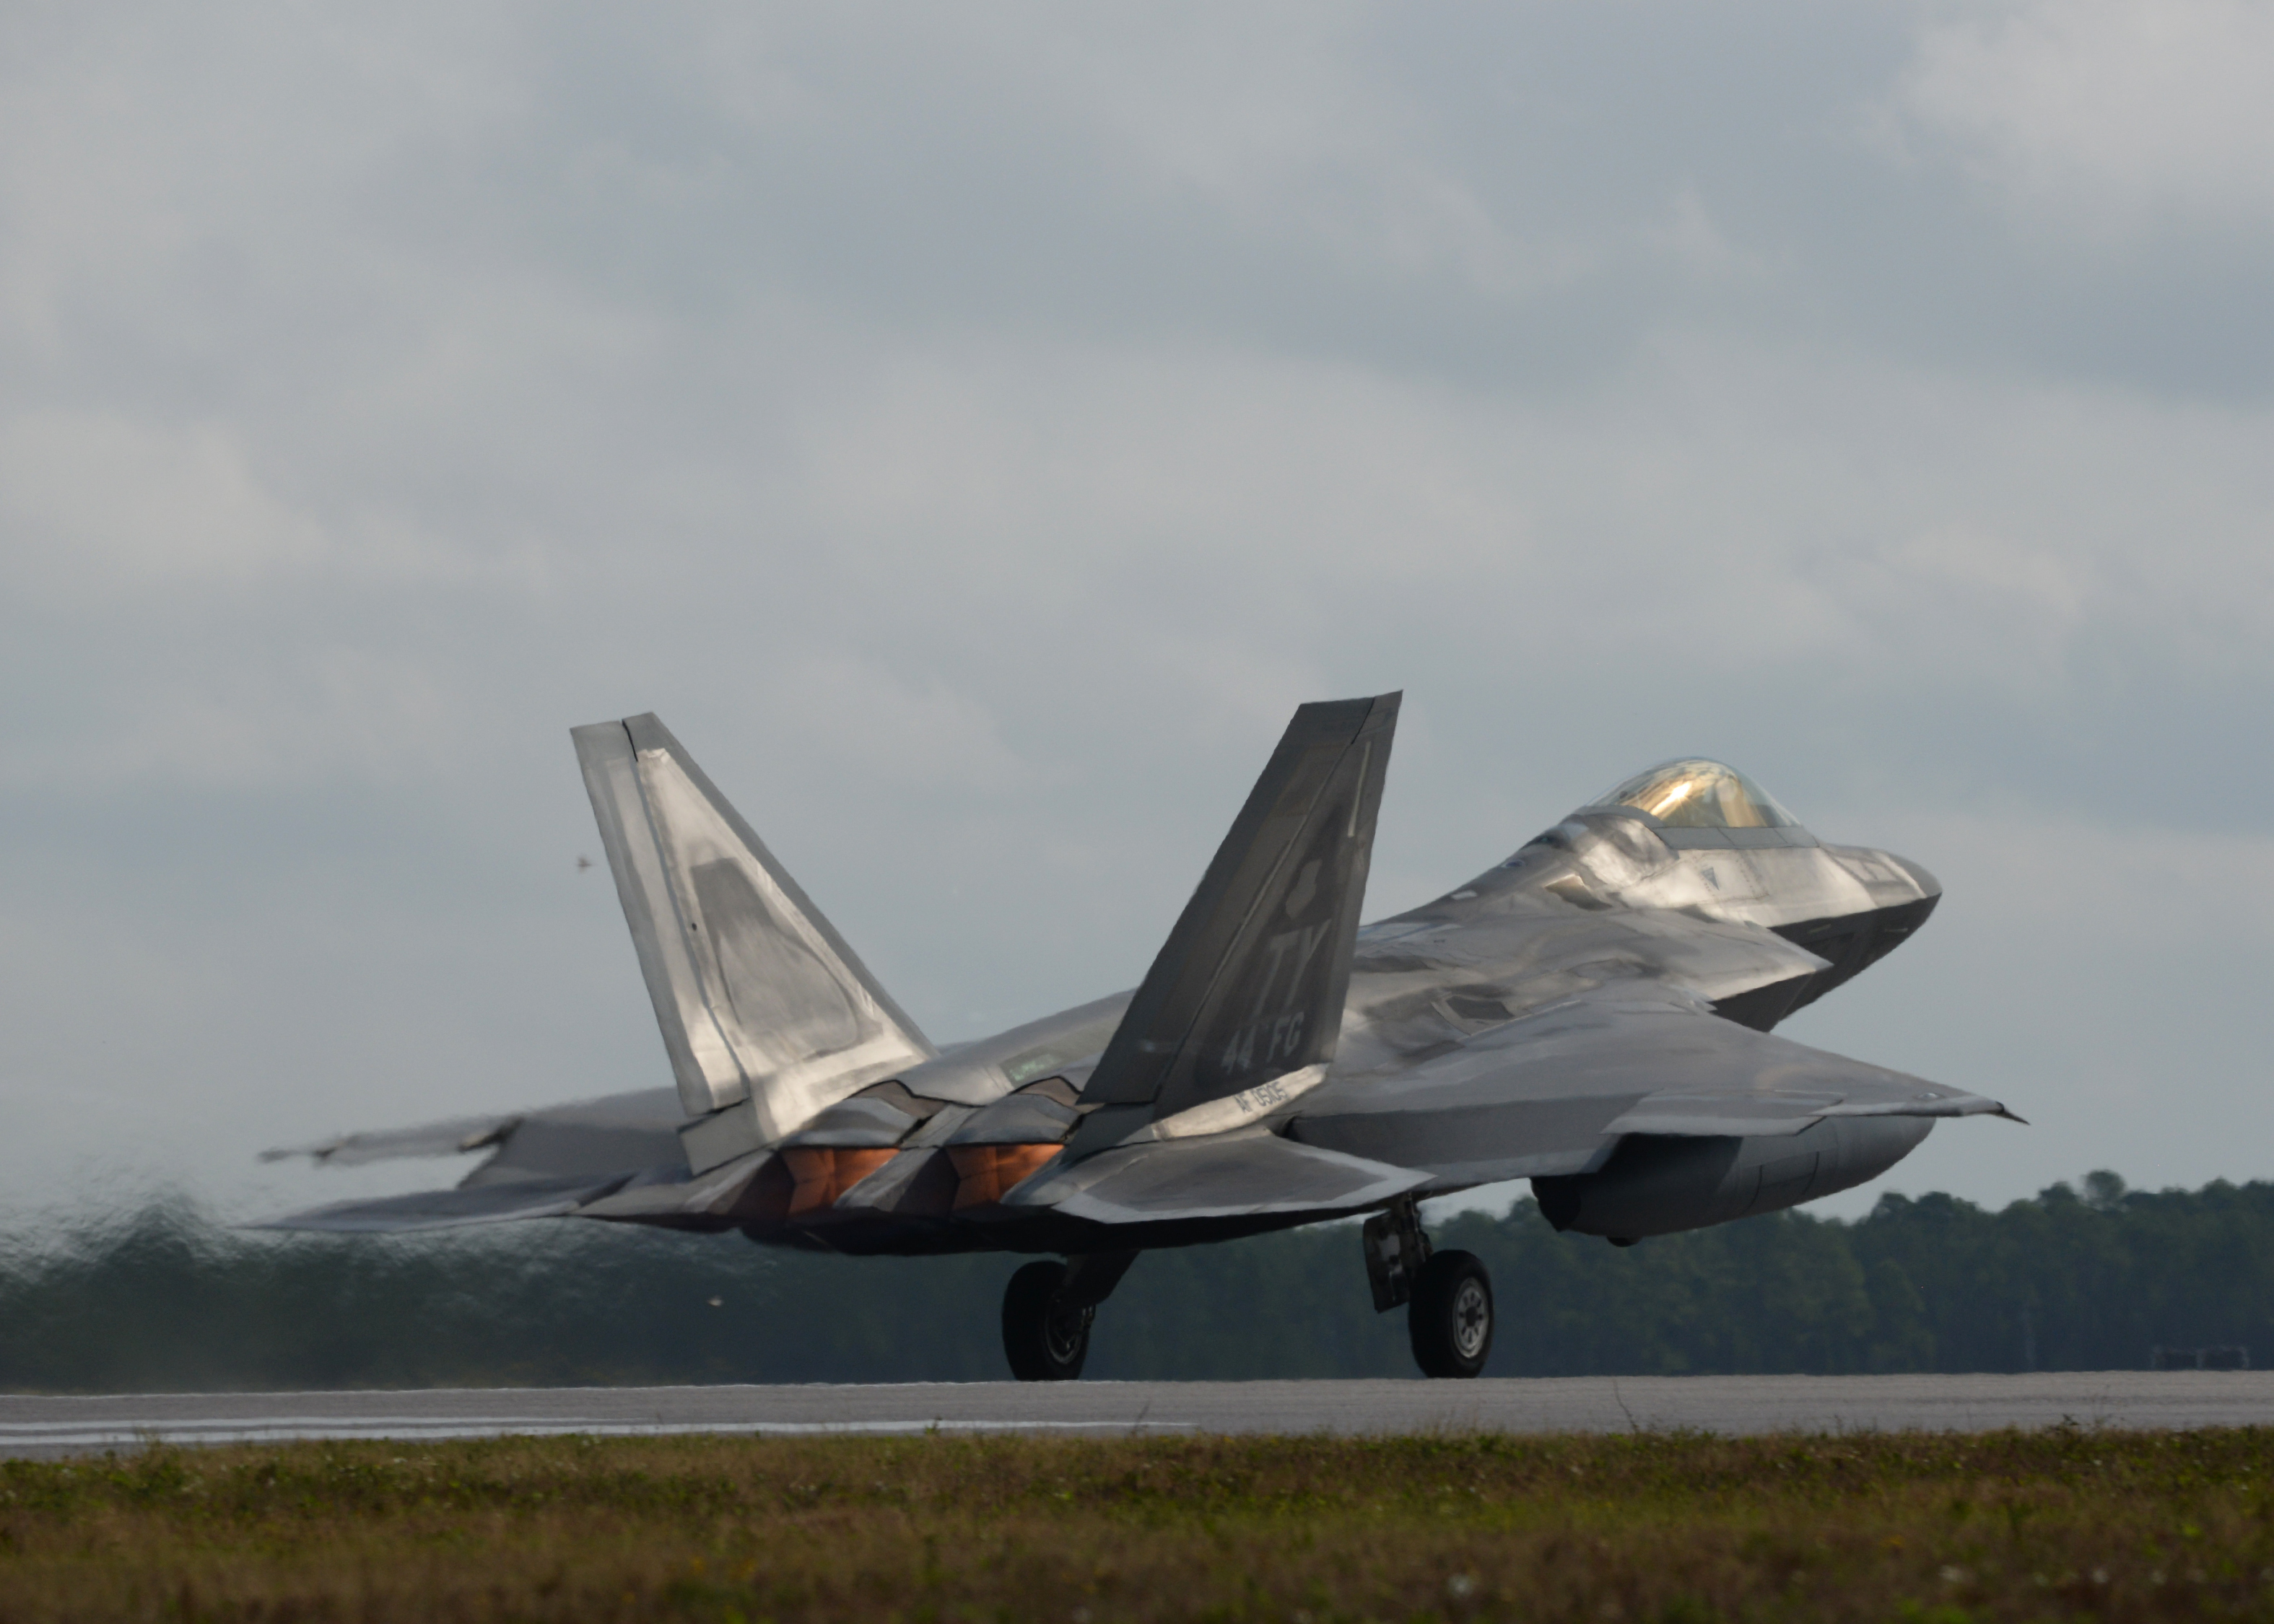 An F-22 Raptor from Tyndall Air Force Base, Fla., takes off in full after burner Nov. 5 at the Tyndall flightline. The F-22 Raptor's combination of stealth, supercruise, maneuverability and integrated avionics, coupled with improved supportability, represents an exponential leap in warfighting capabilities and allows for the full realization of operational concepts that are vital to the 21st century Air Force. (U.S. Air Force photo by Senior Airman Sergio A. Gamboa/Released)